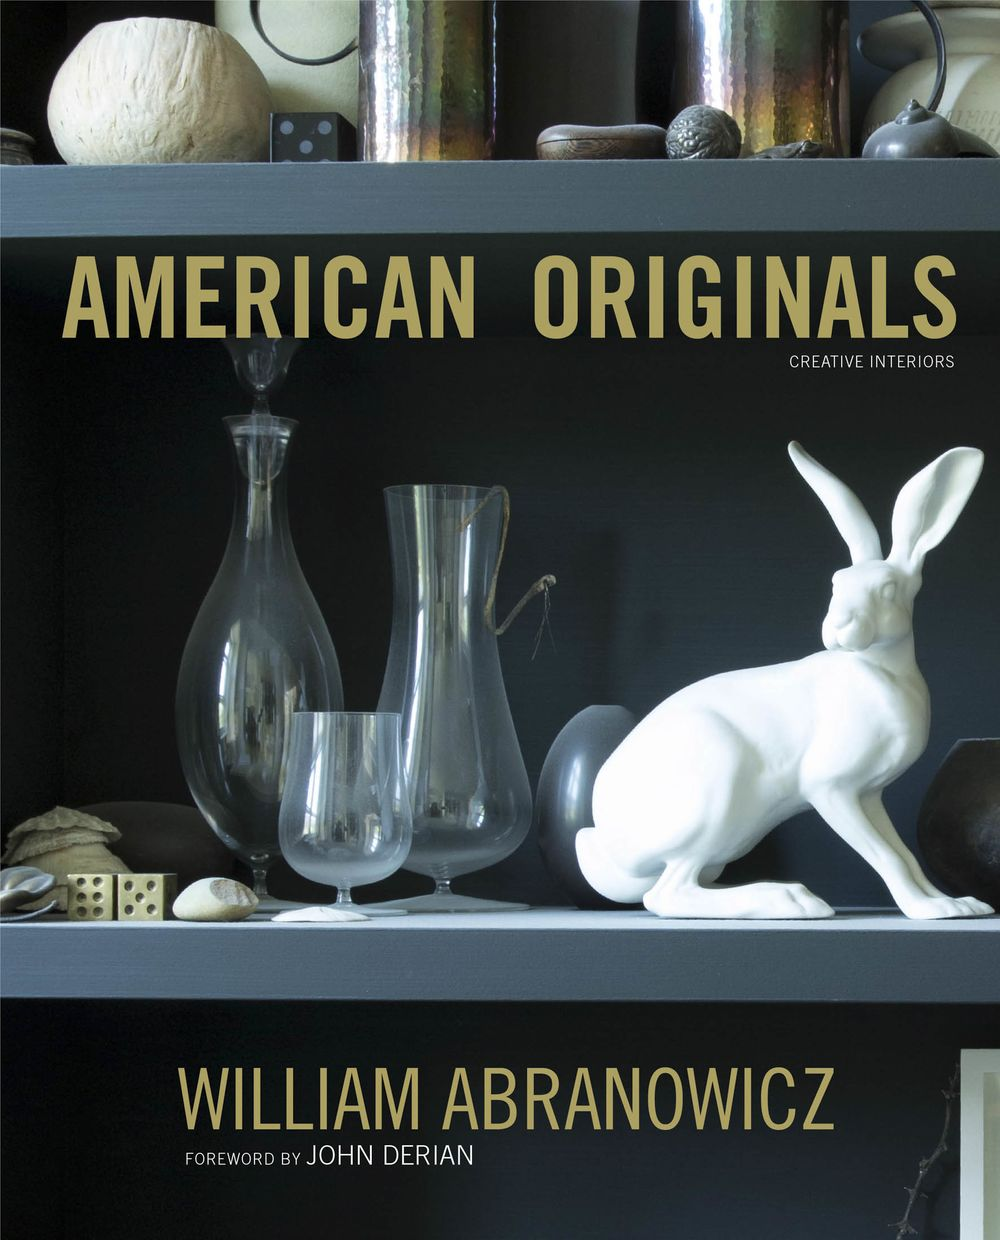 American Originals  is available Sept. 11.